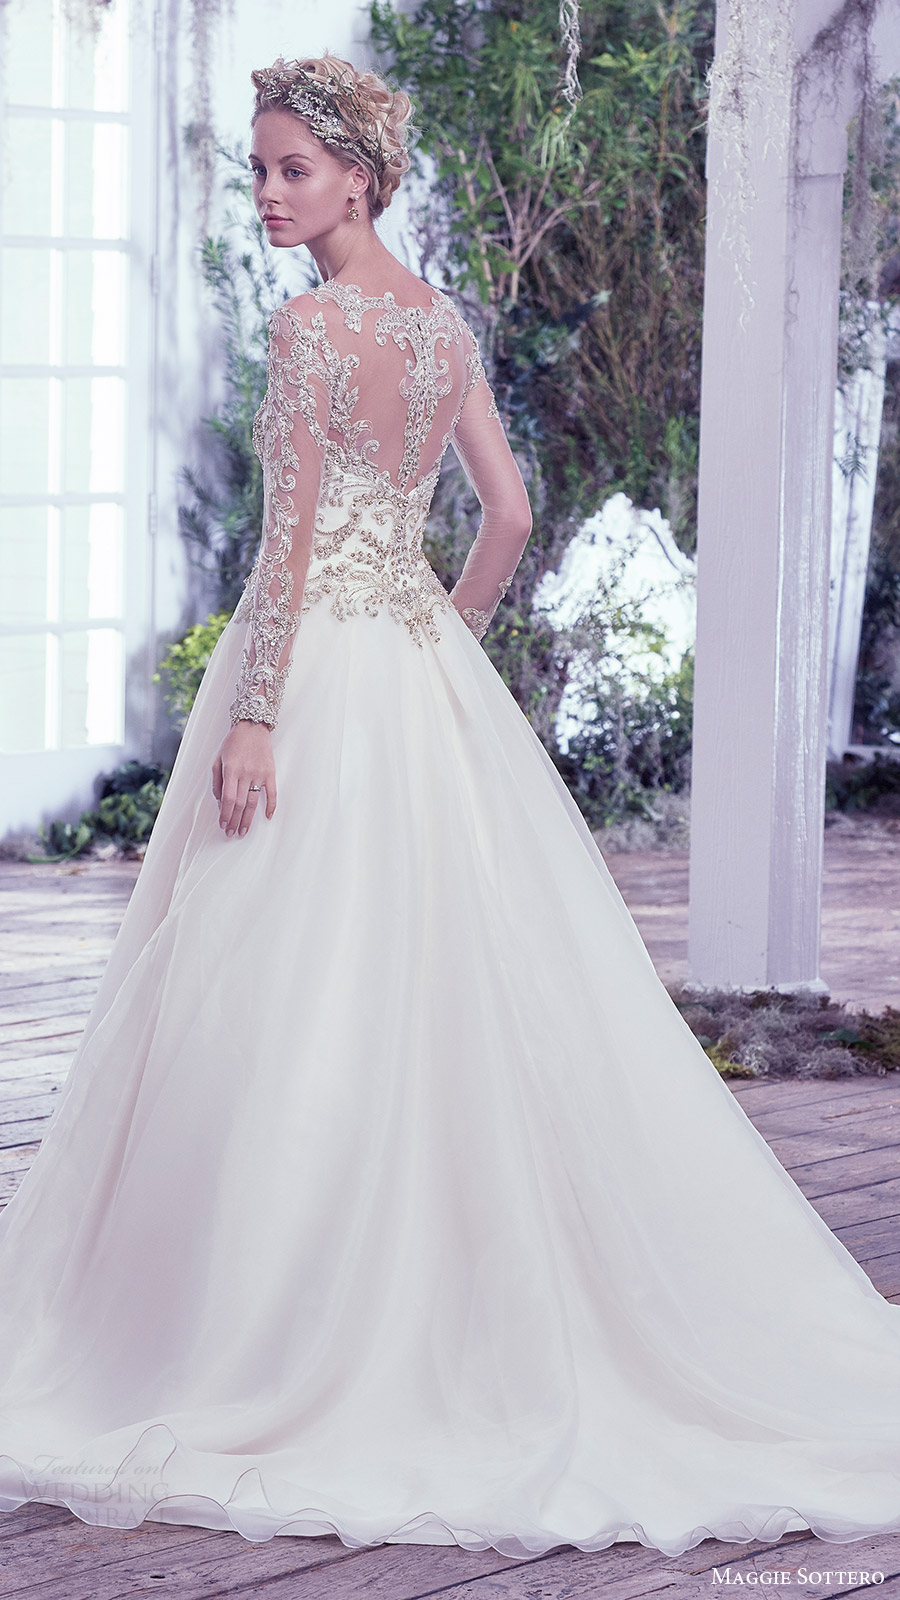 Maggie sottero bridal gown prices high cut wedding dresses for Wedding dress with prices